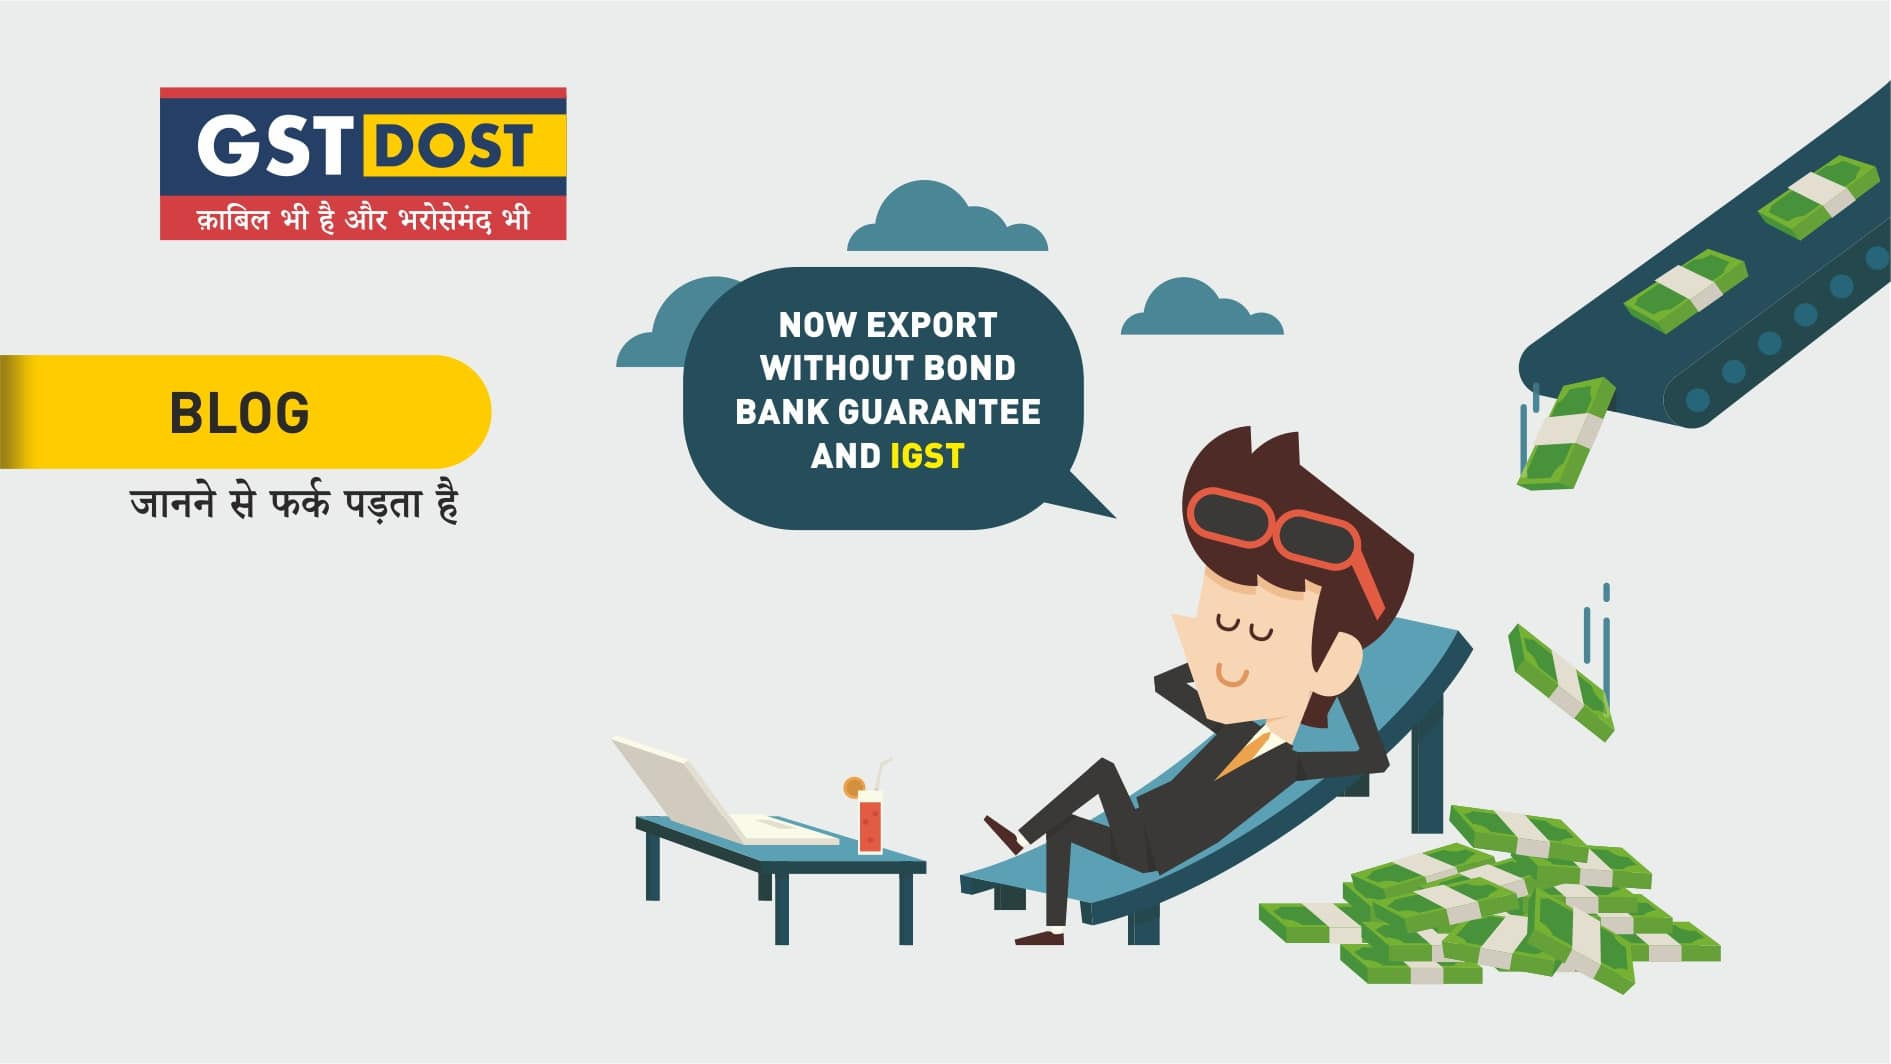 Small Exporters will be able to Export without Bond-Bank Guarantee and IGST